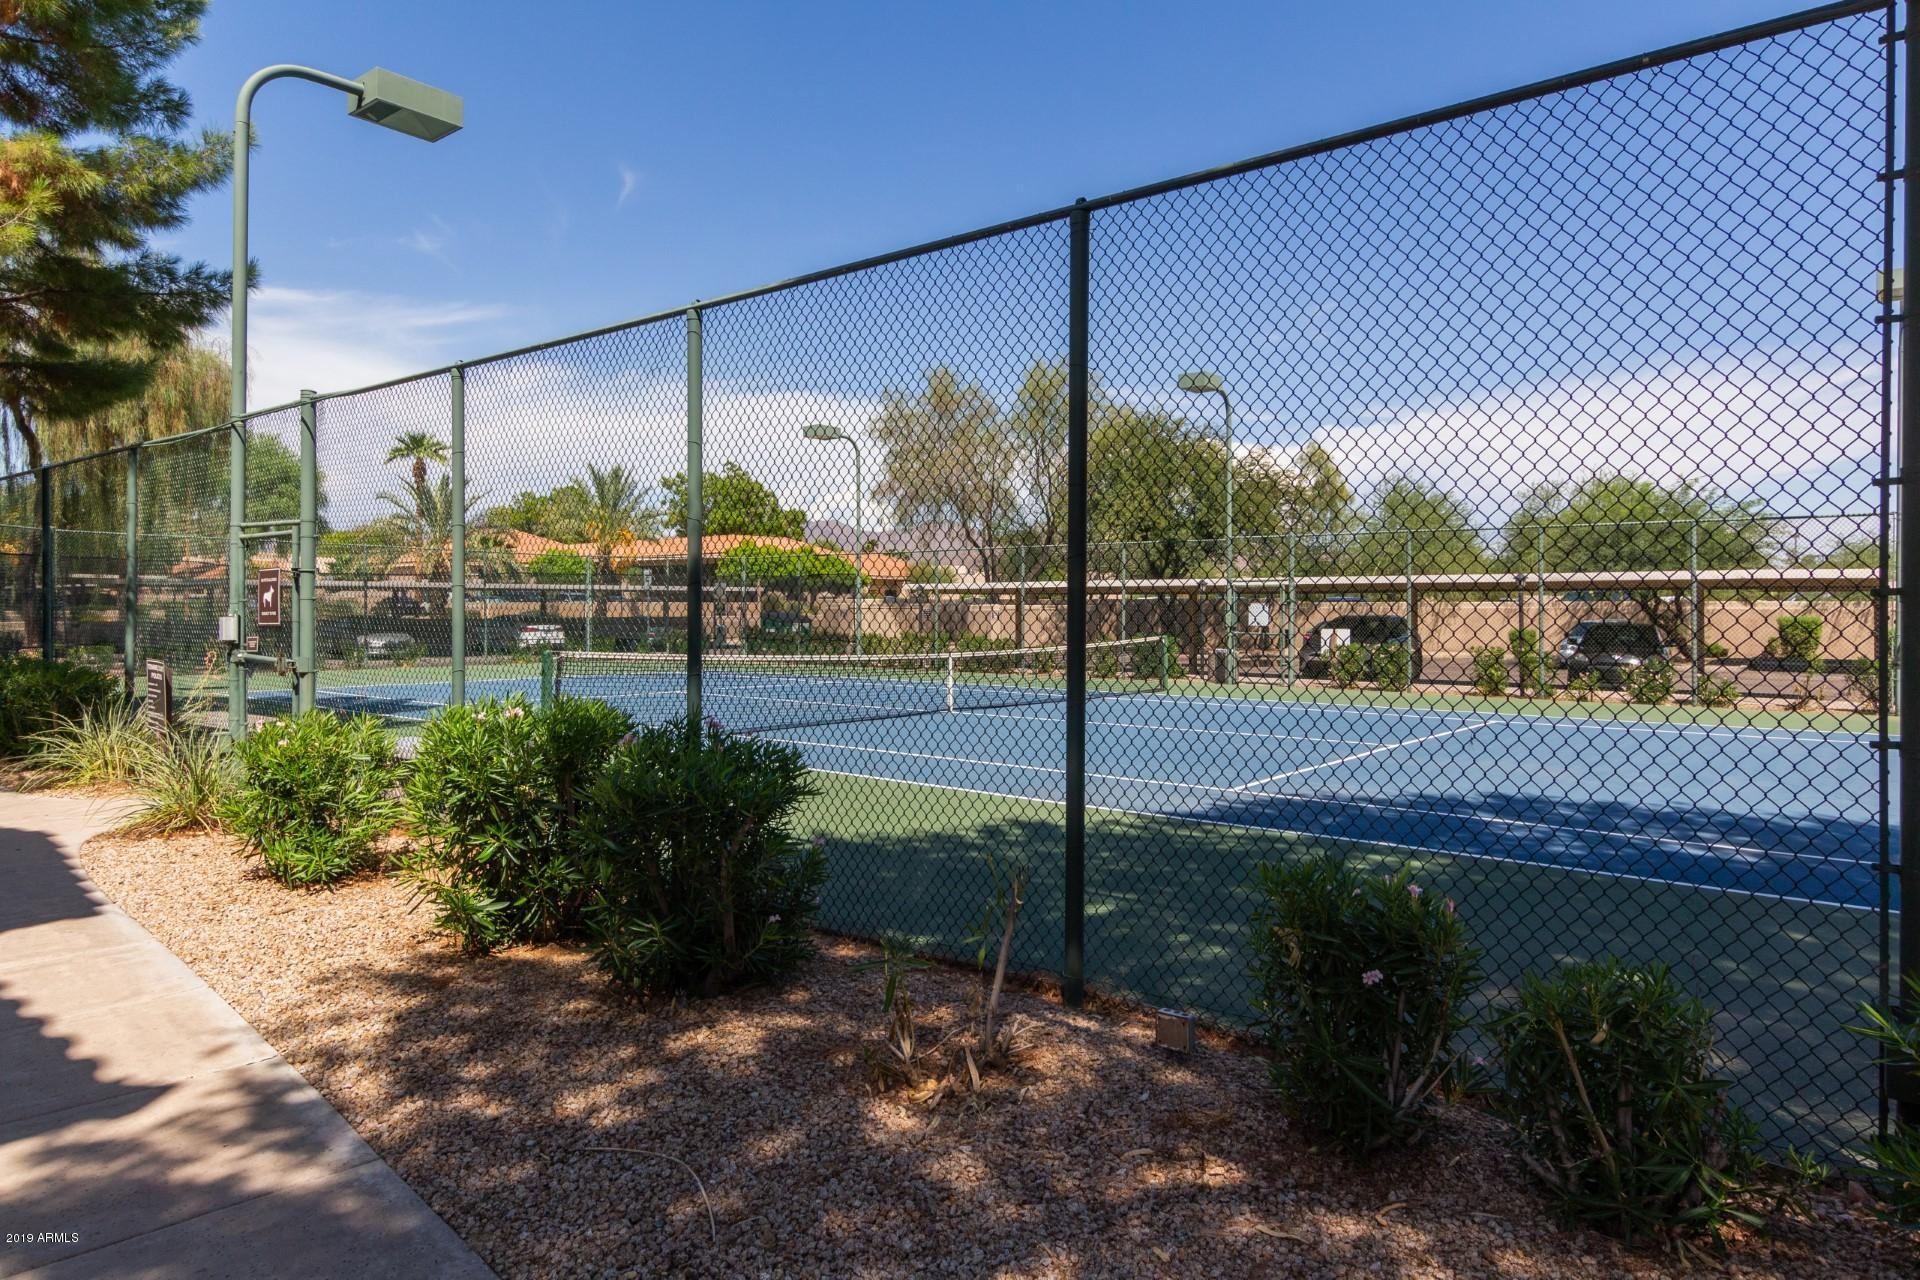 MLS 5971957 9451 E BECKER Lane Unit 2036, Scottsdale, AZ 85260 Scottsdale AZ Scottsdale Airpark Area